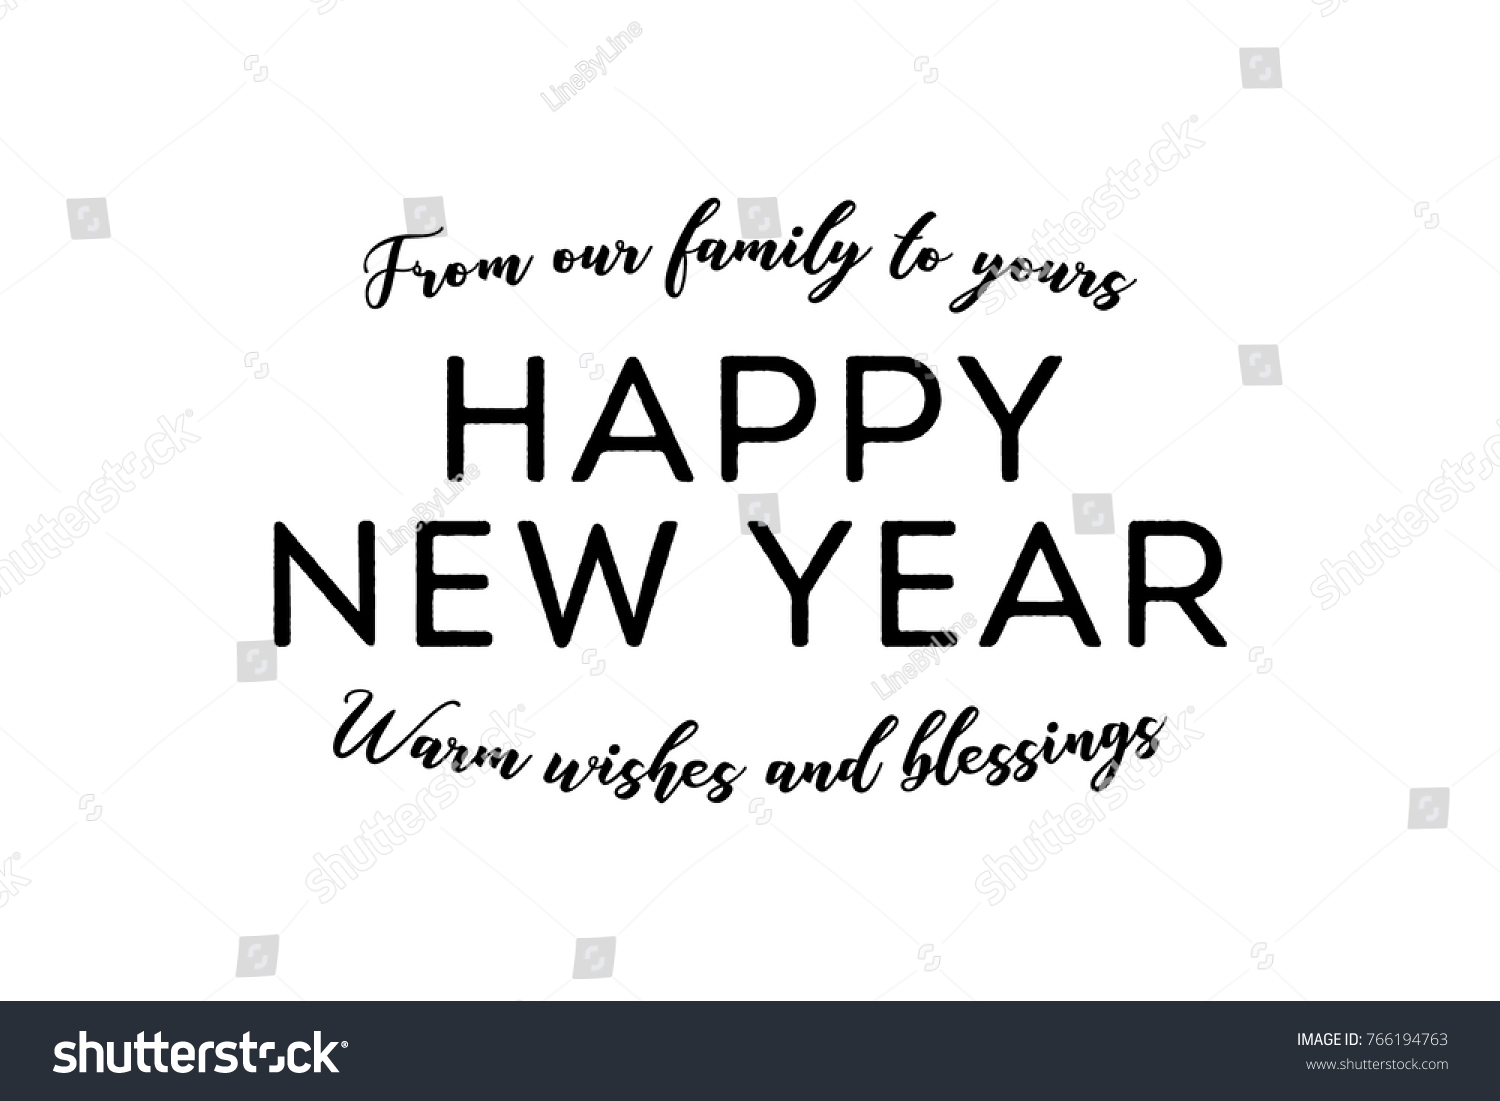 from our family to yours happy new year text graphic vector illustration